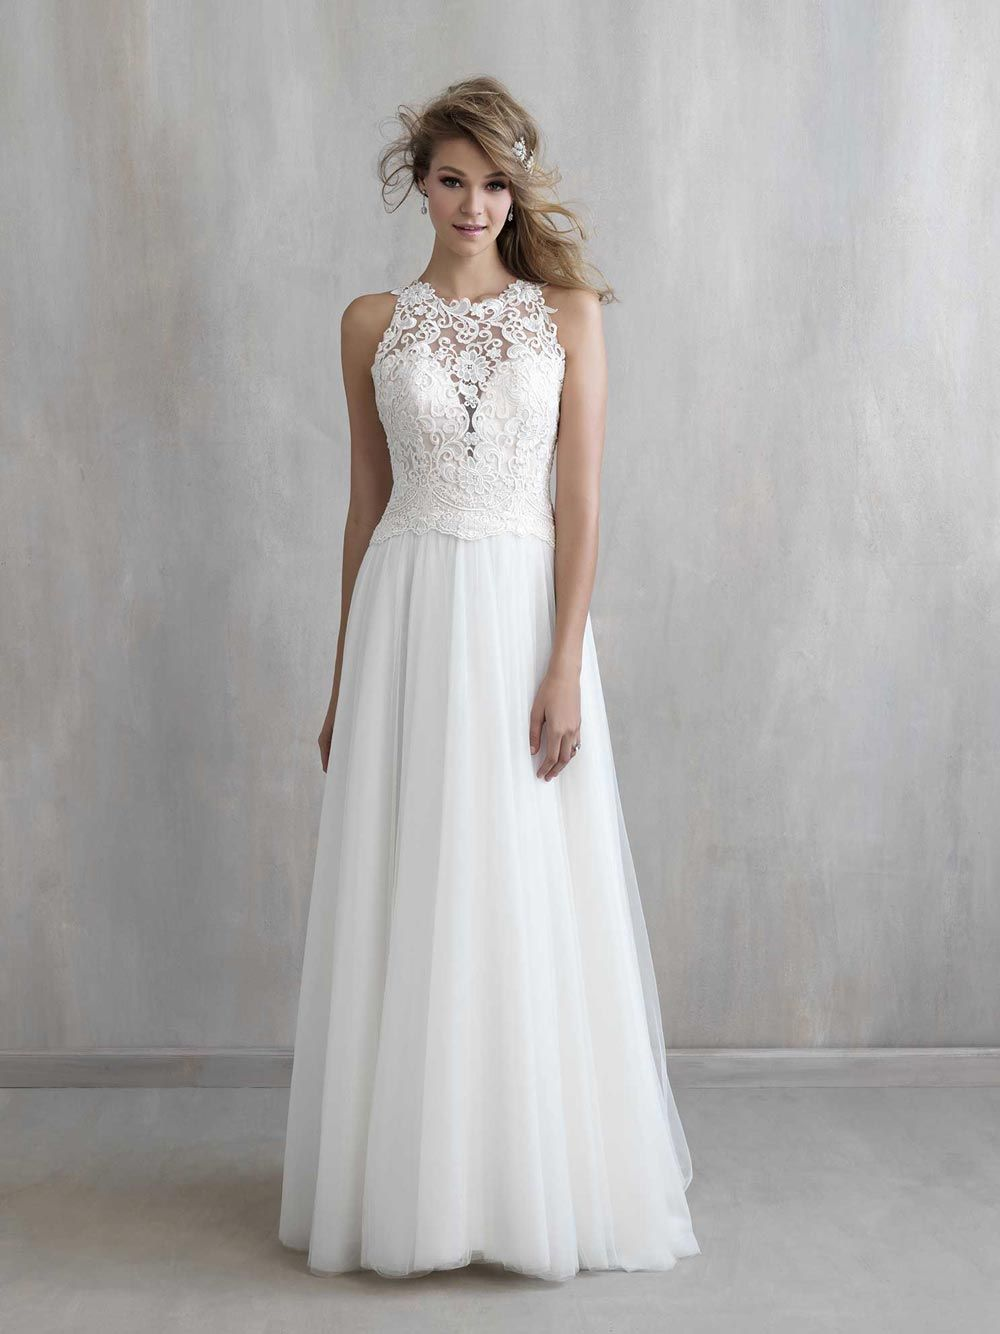 Our favourite grecian style wedding dresses bridal gowns wedding lace detailed grecian bridal gown from madison james junglespirit Choice Image